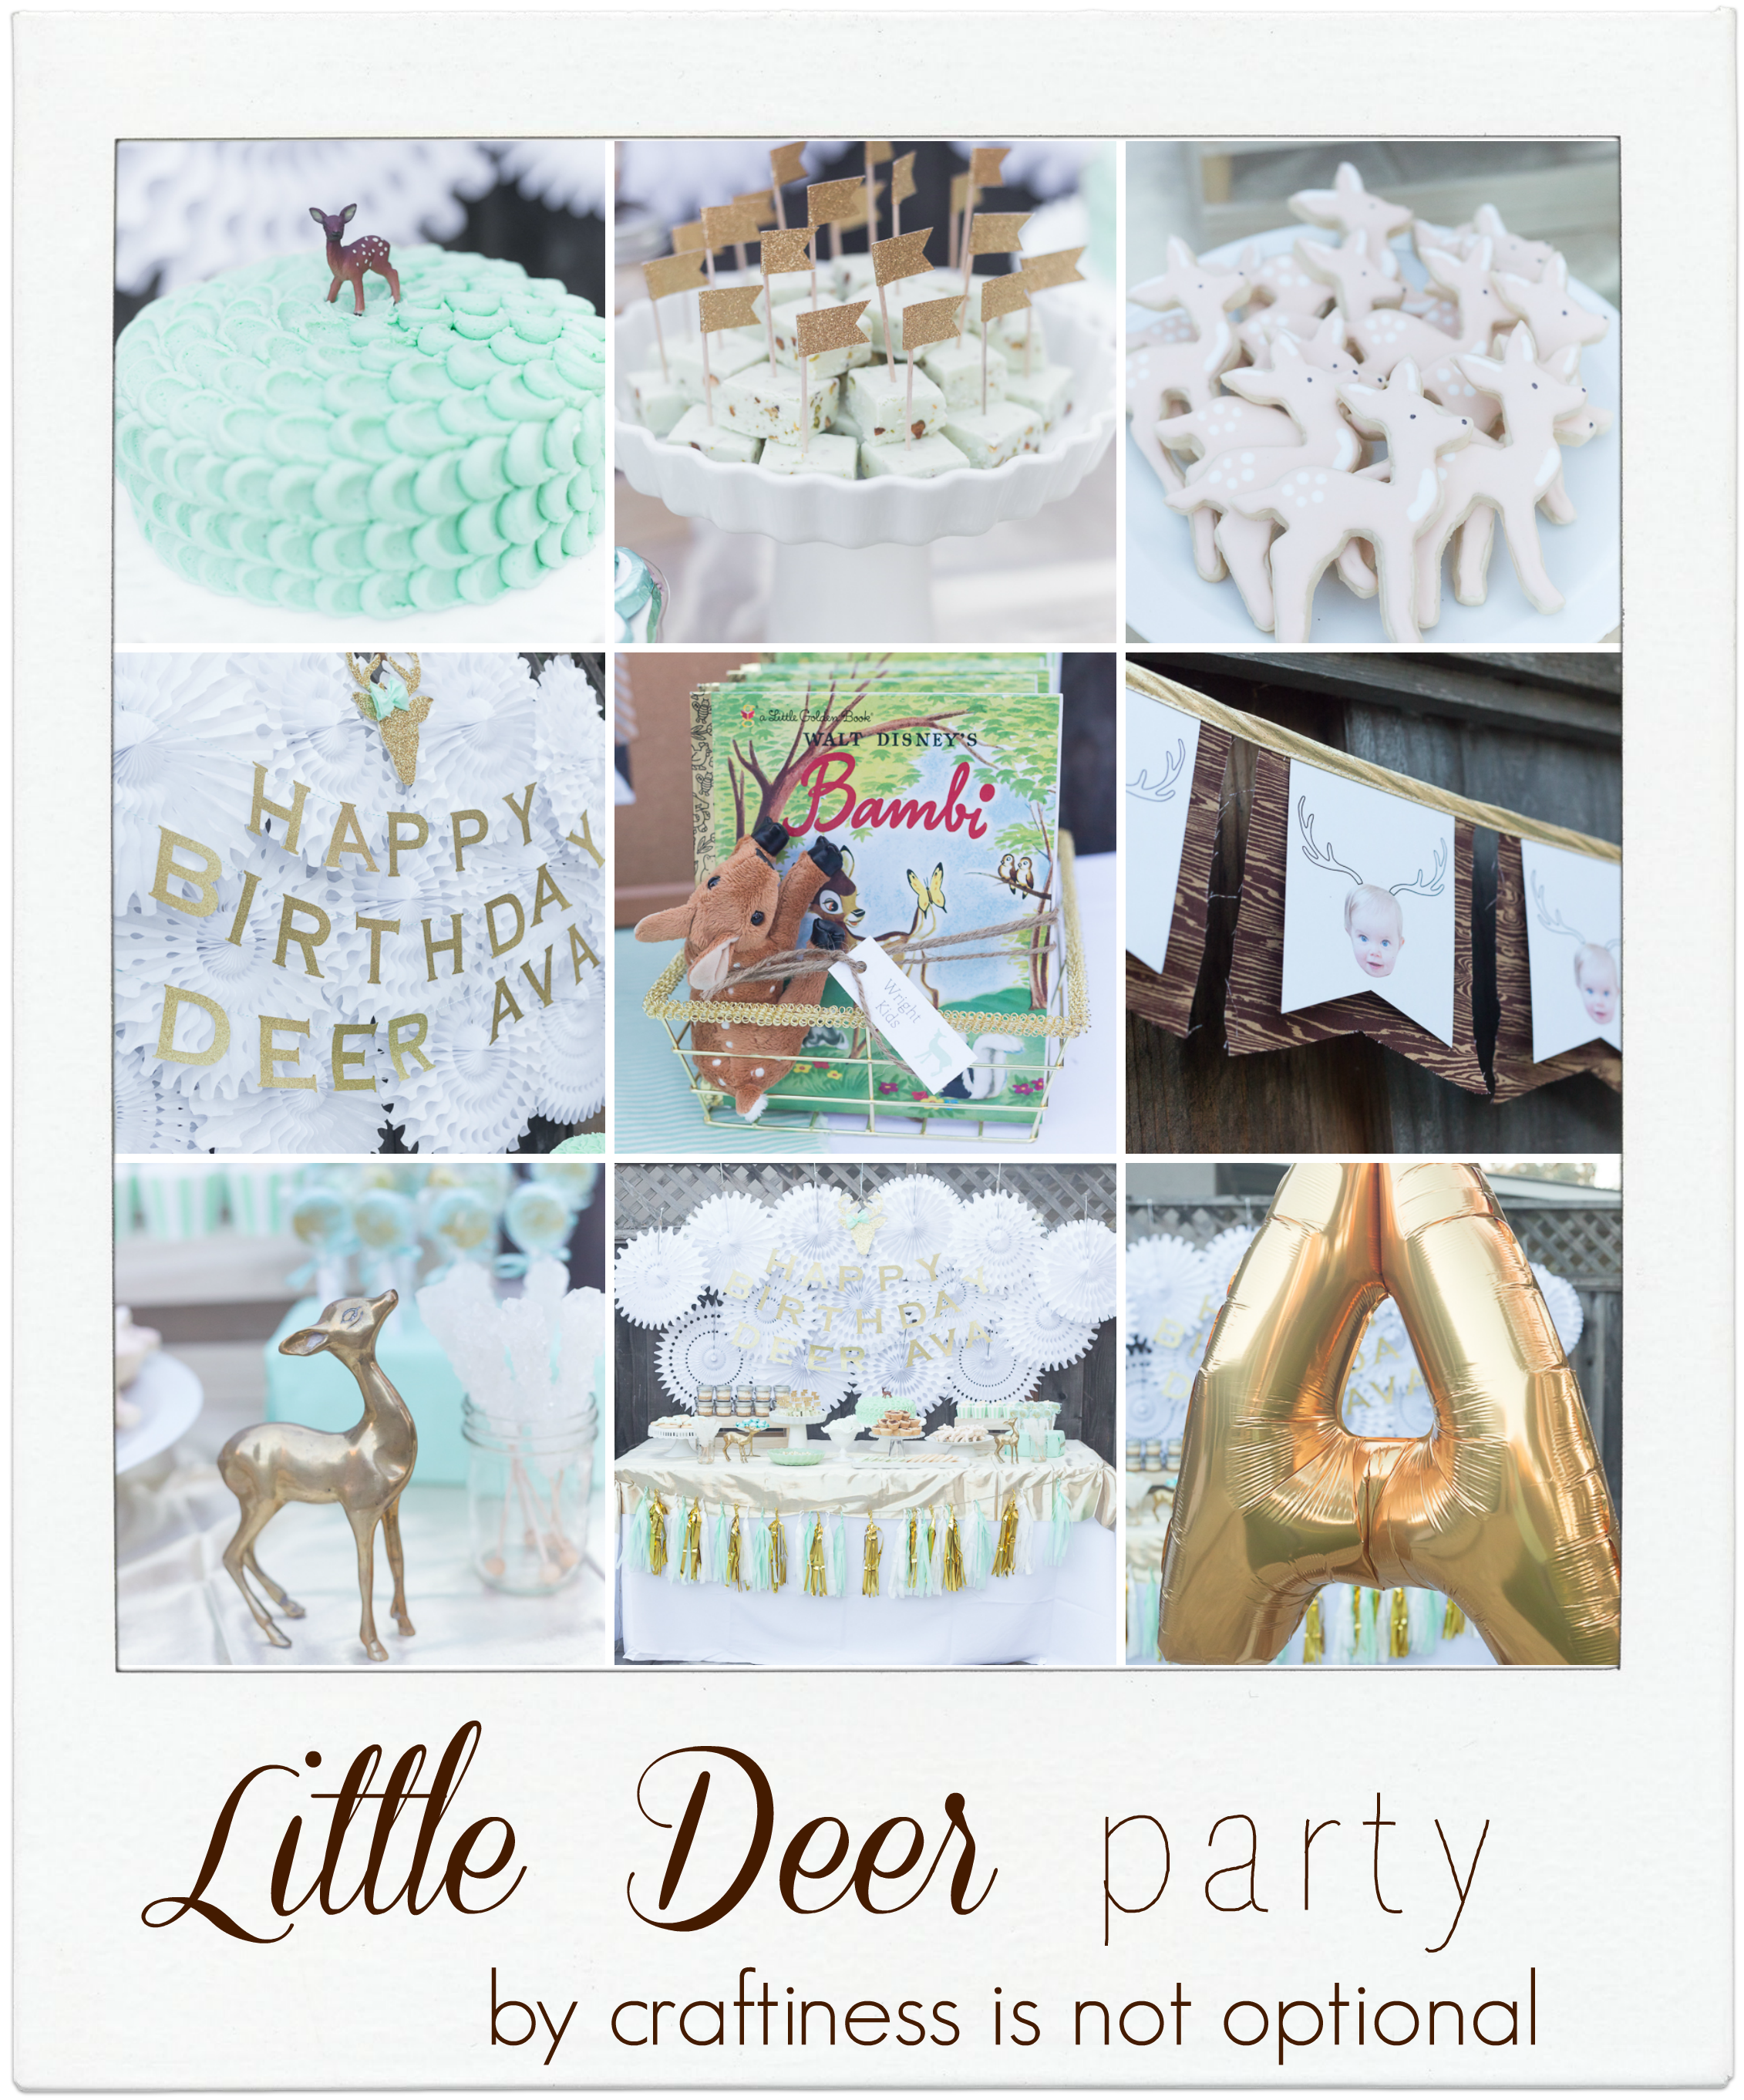 Mint and green deer party by craftiness is not optional - Beautiful sweets table!